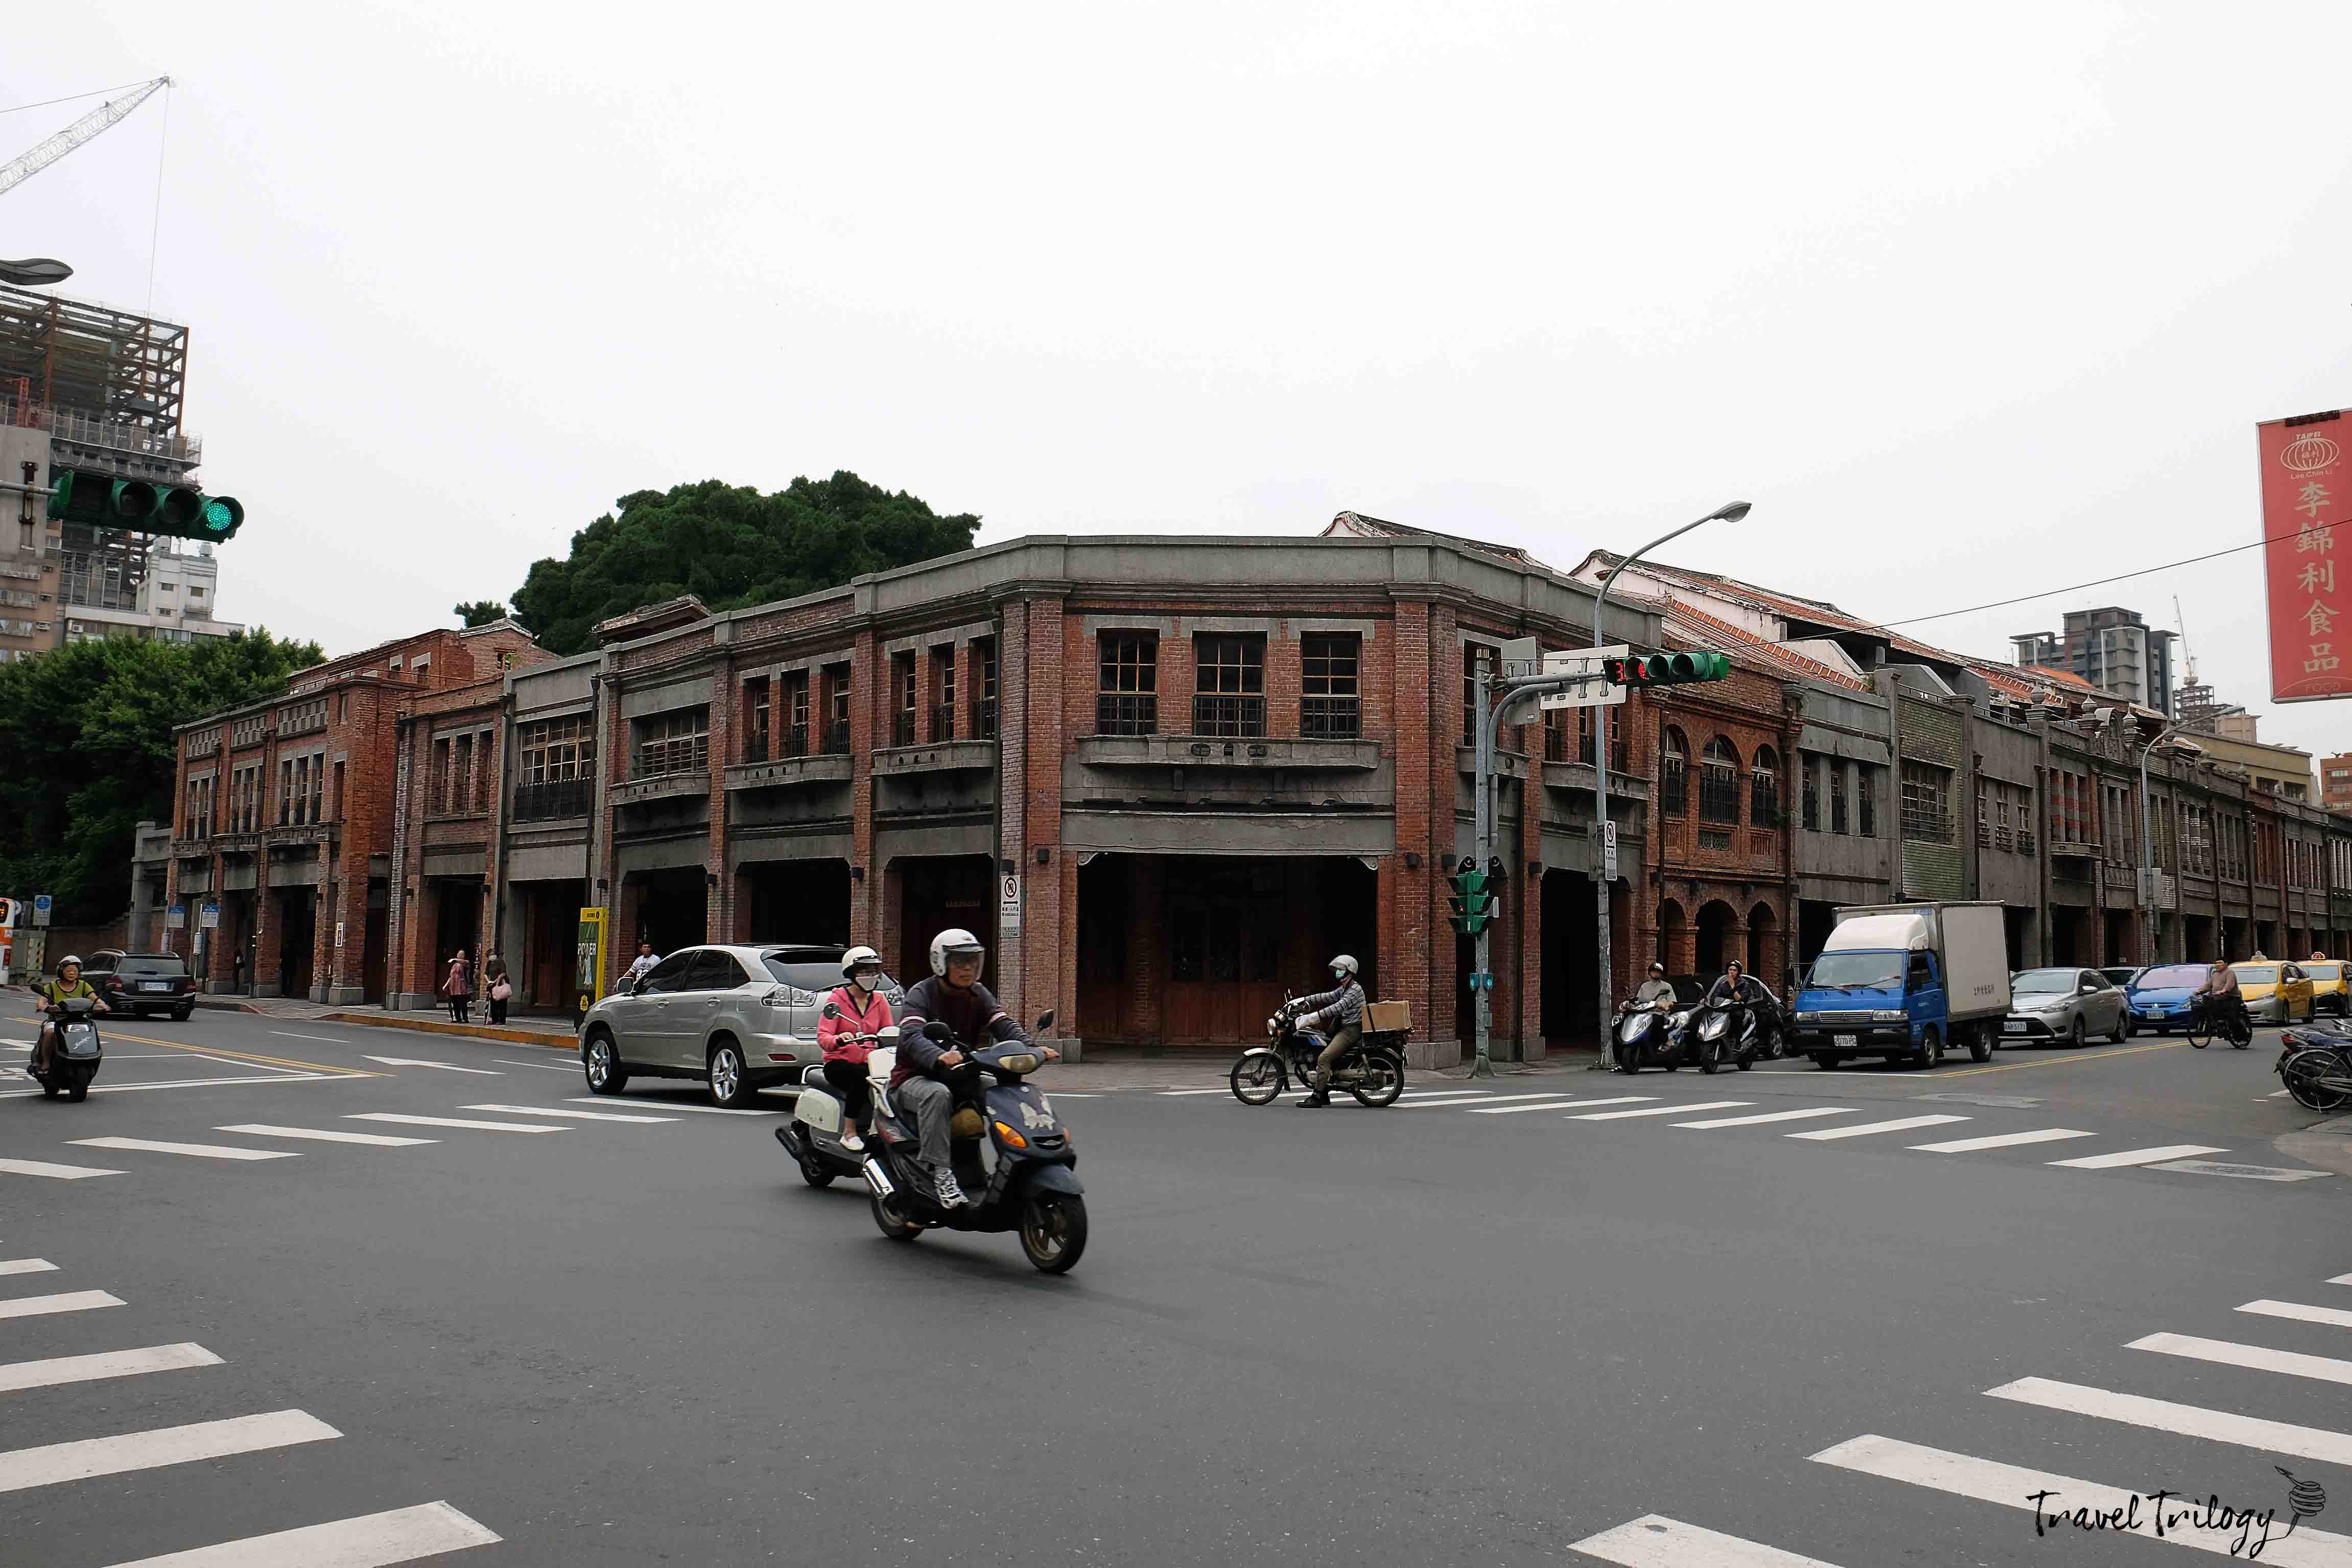 Taipei. Taiwan | Must-See Places in Downtown Taipei - Travel Trilogy